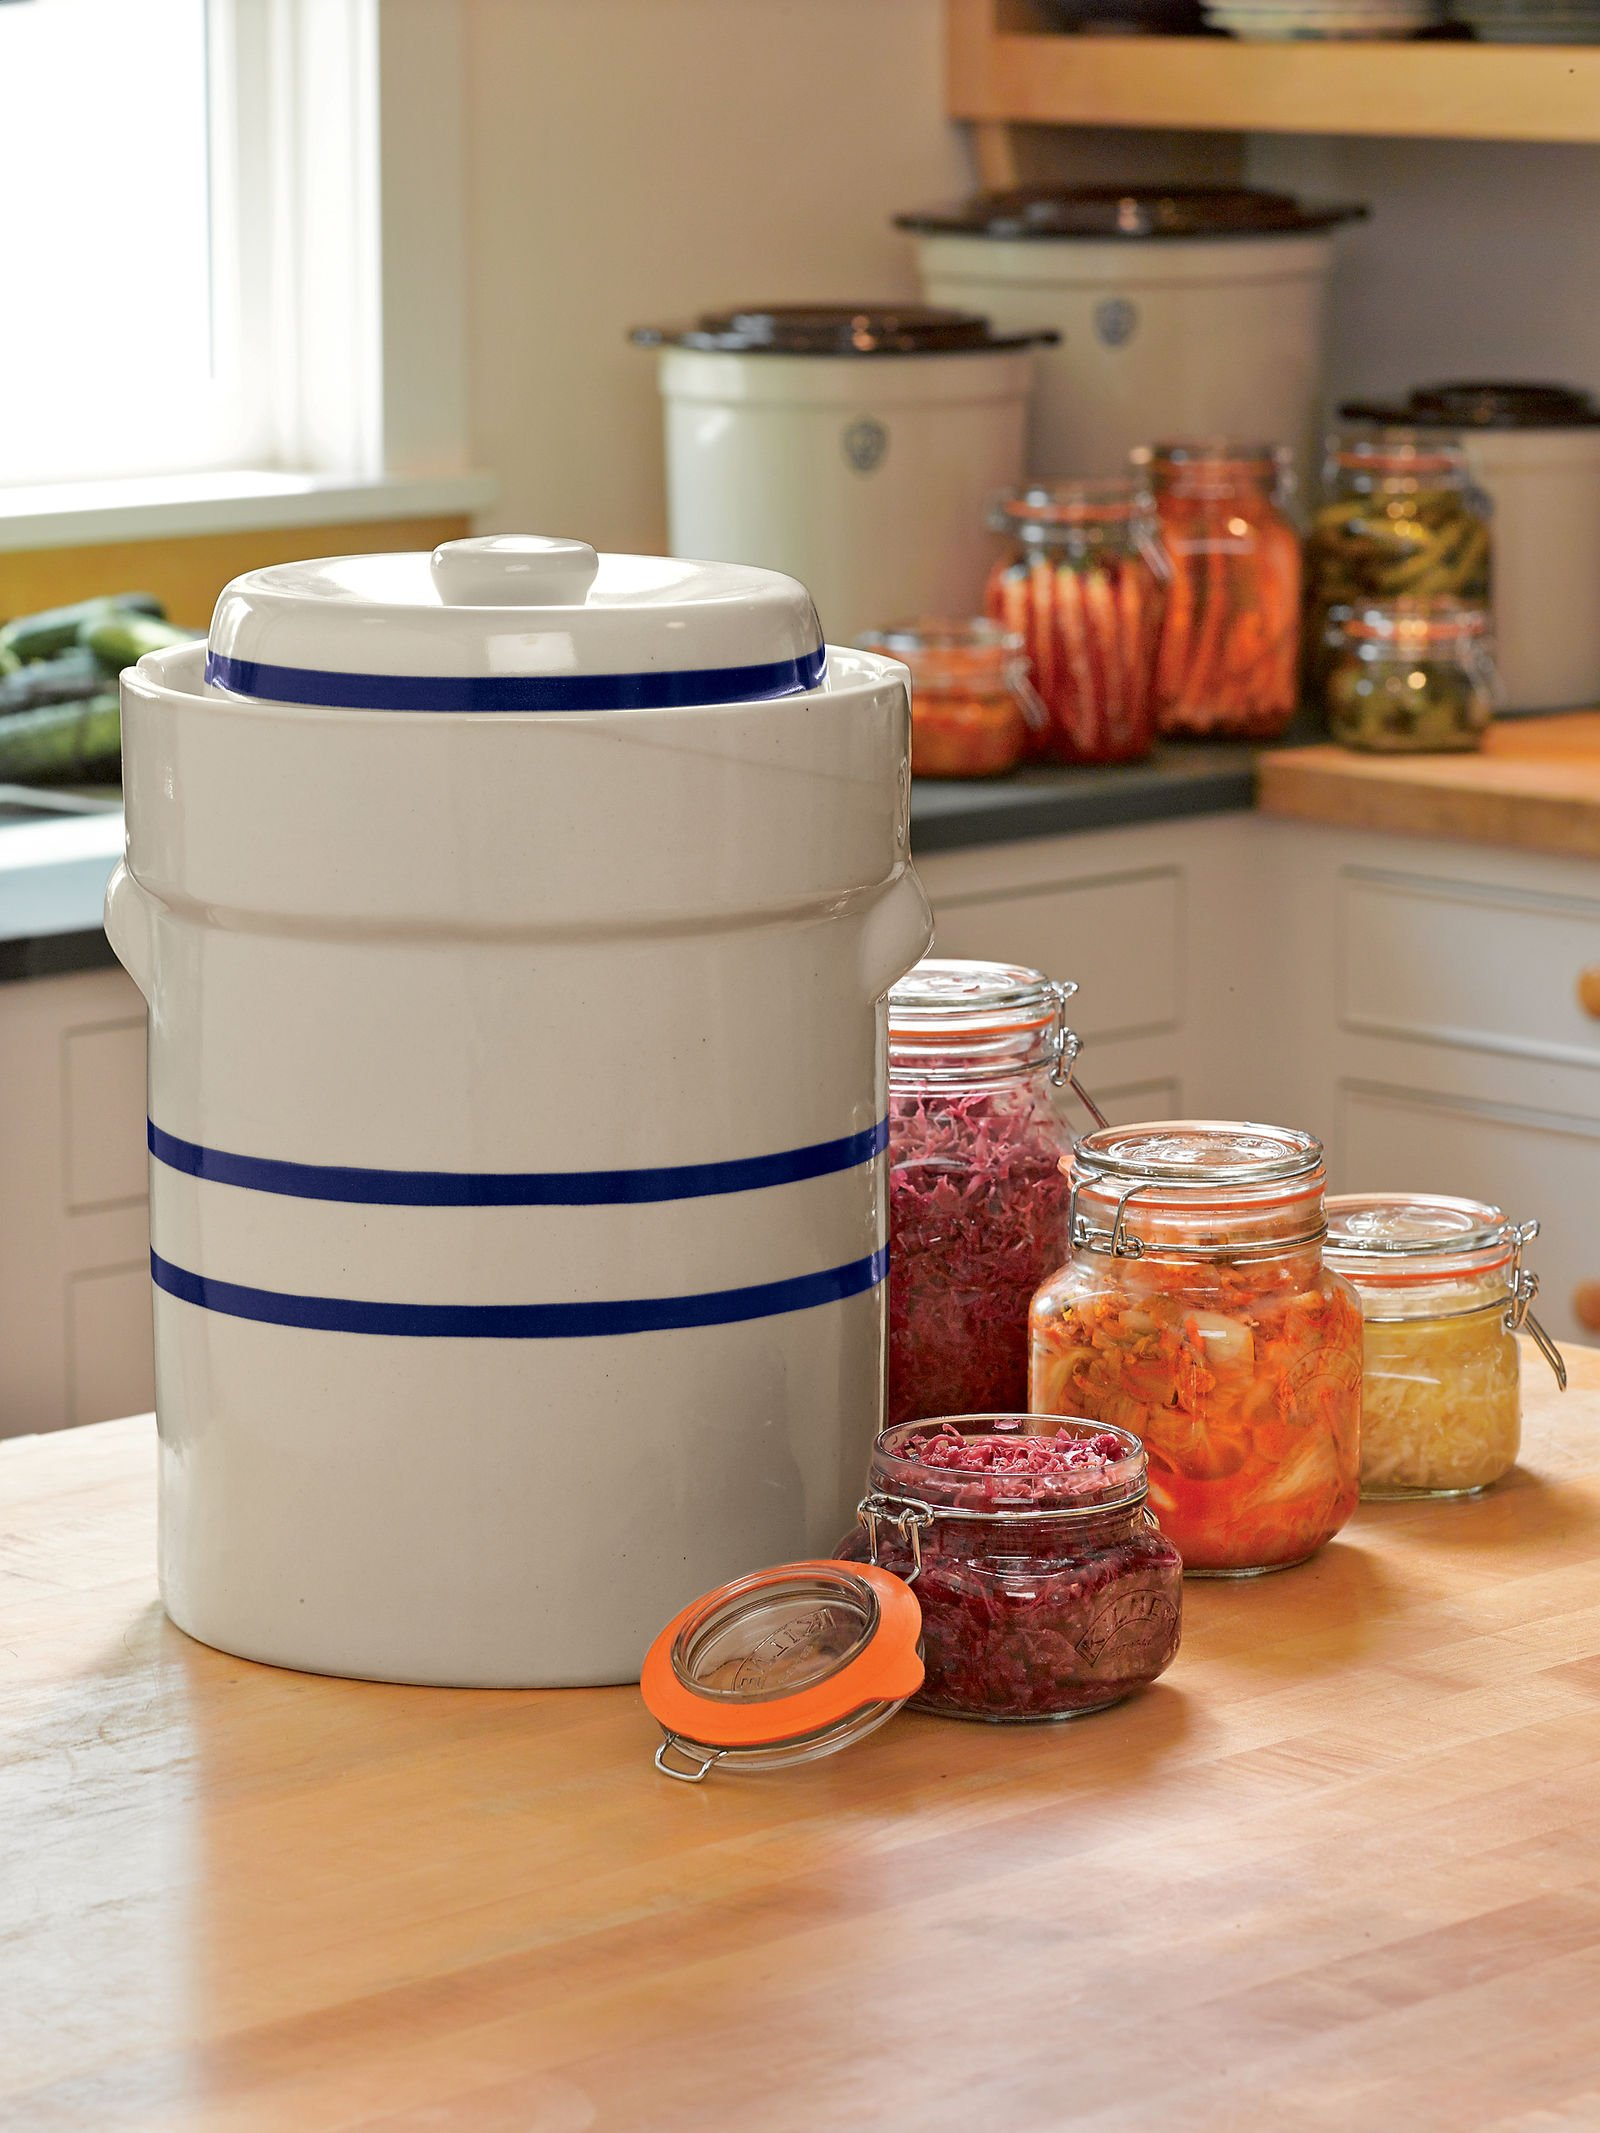 Ohio Stoneware 3 Gallon Fermentation/Preserving Crock Set - Great for Pickling and Sauerkraut!! by OHIO STONEWARE (Image #2)